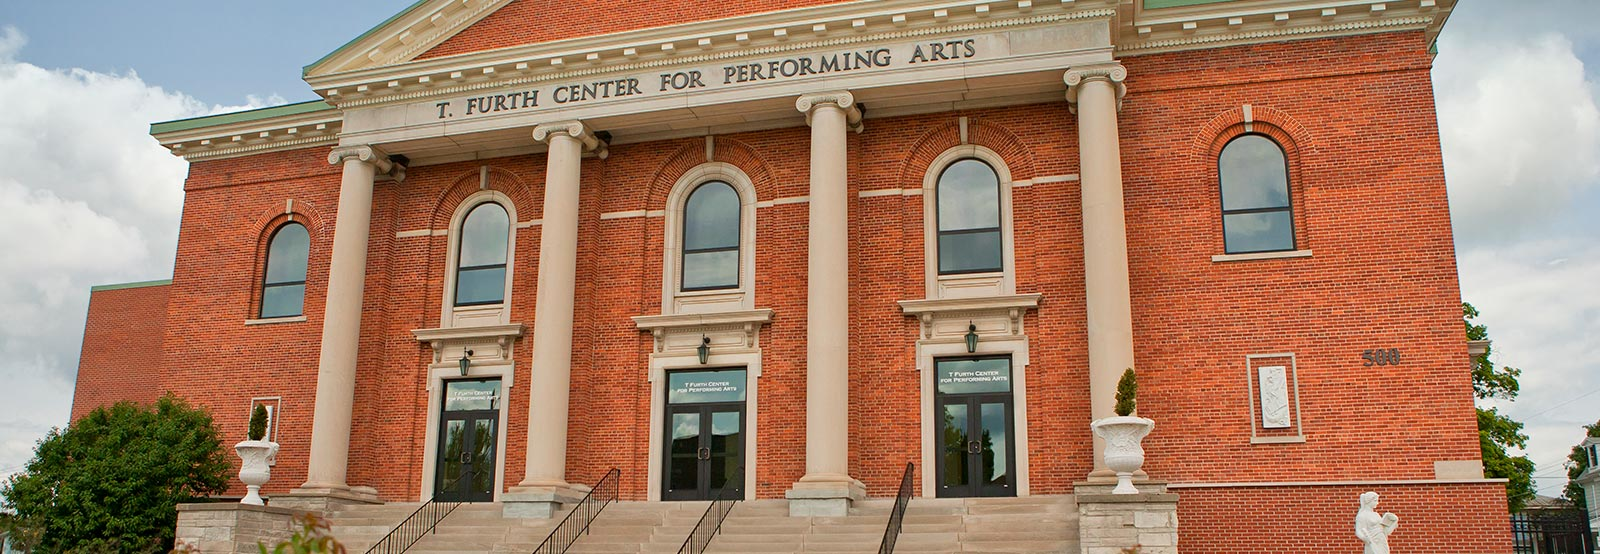 T. Furth Center for Performing Arts and Ryan Concert Hall